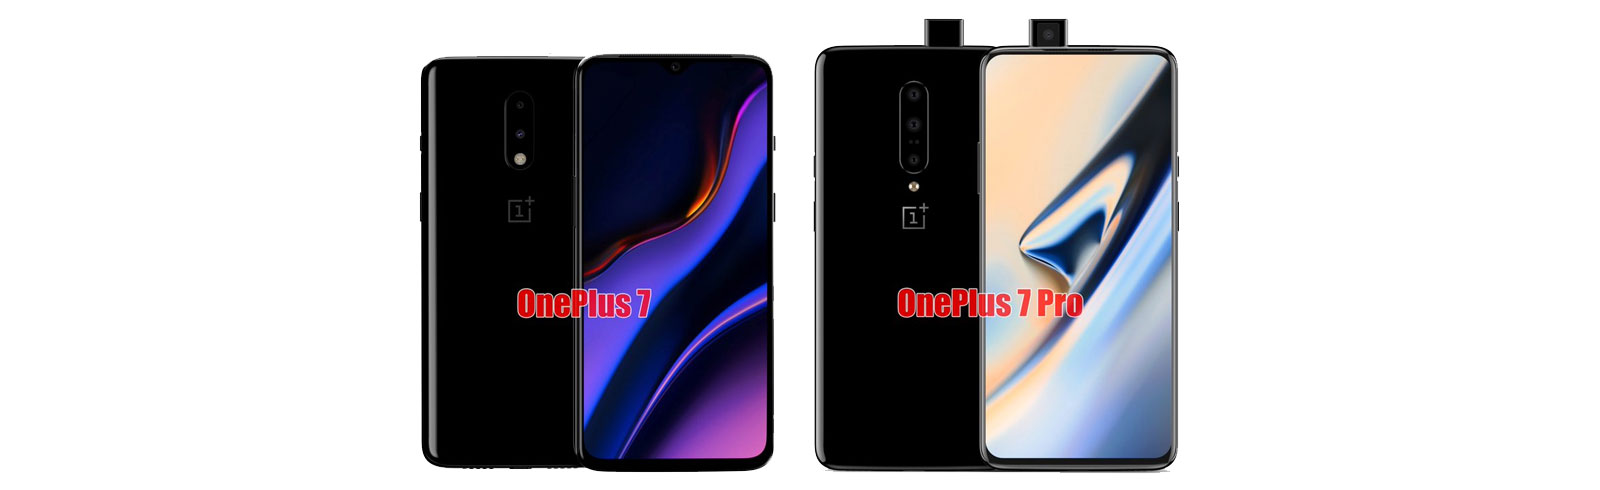 OnePlus 7 and OnePlus 7 Pro will be unveiled on May 14th, details in tow